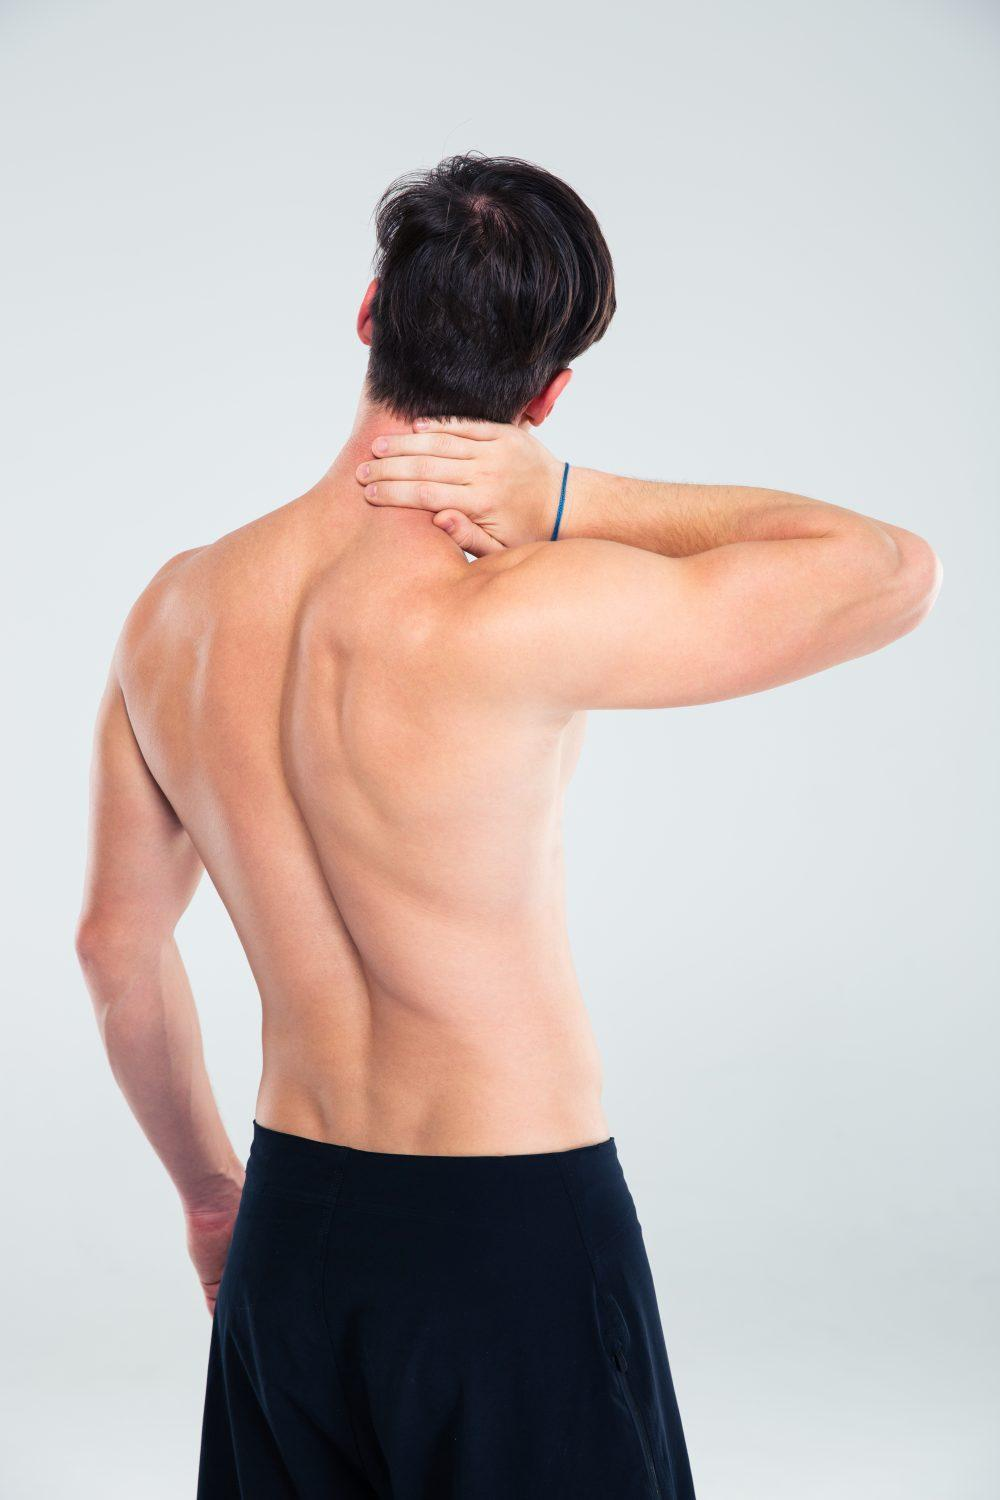 Castle Hill Chiropractic